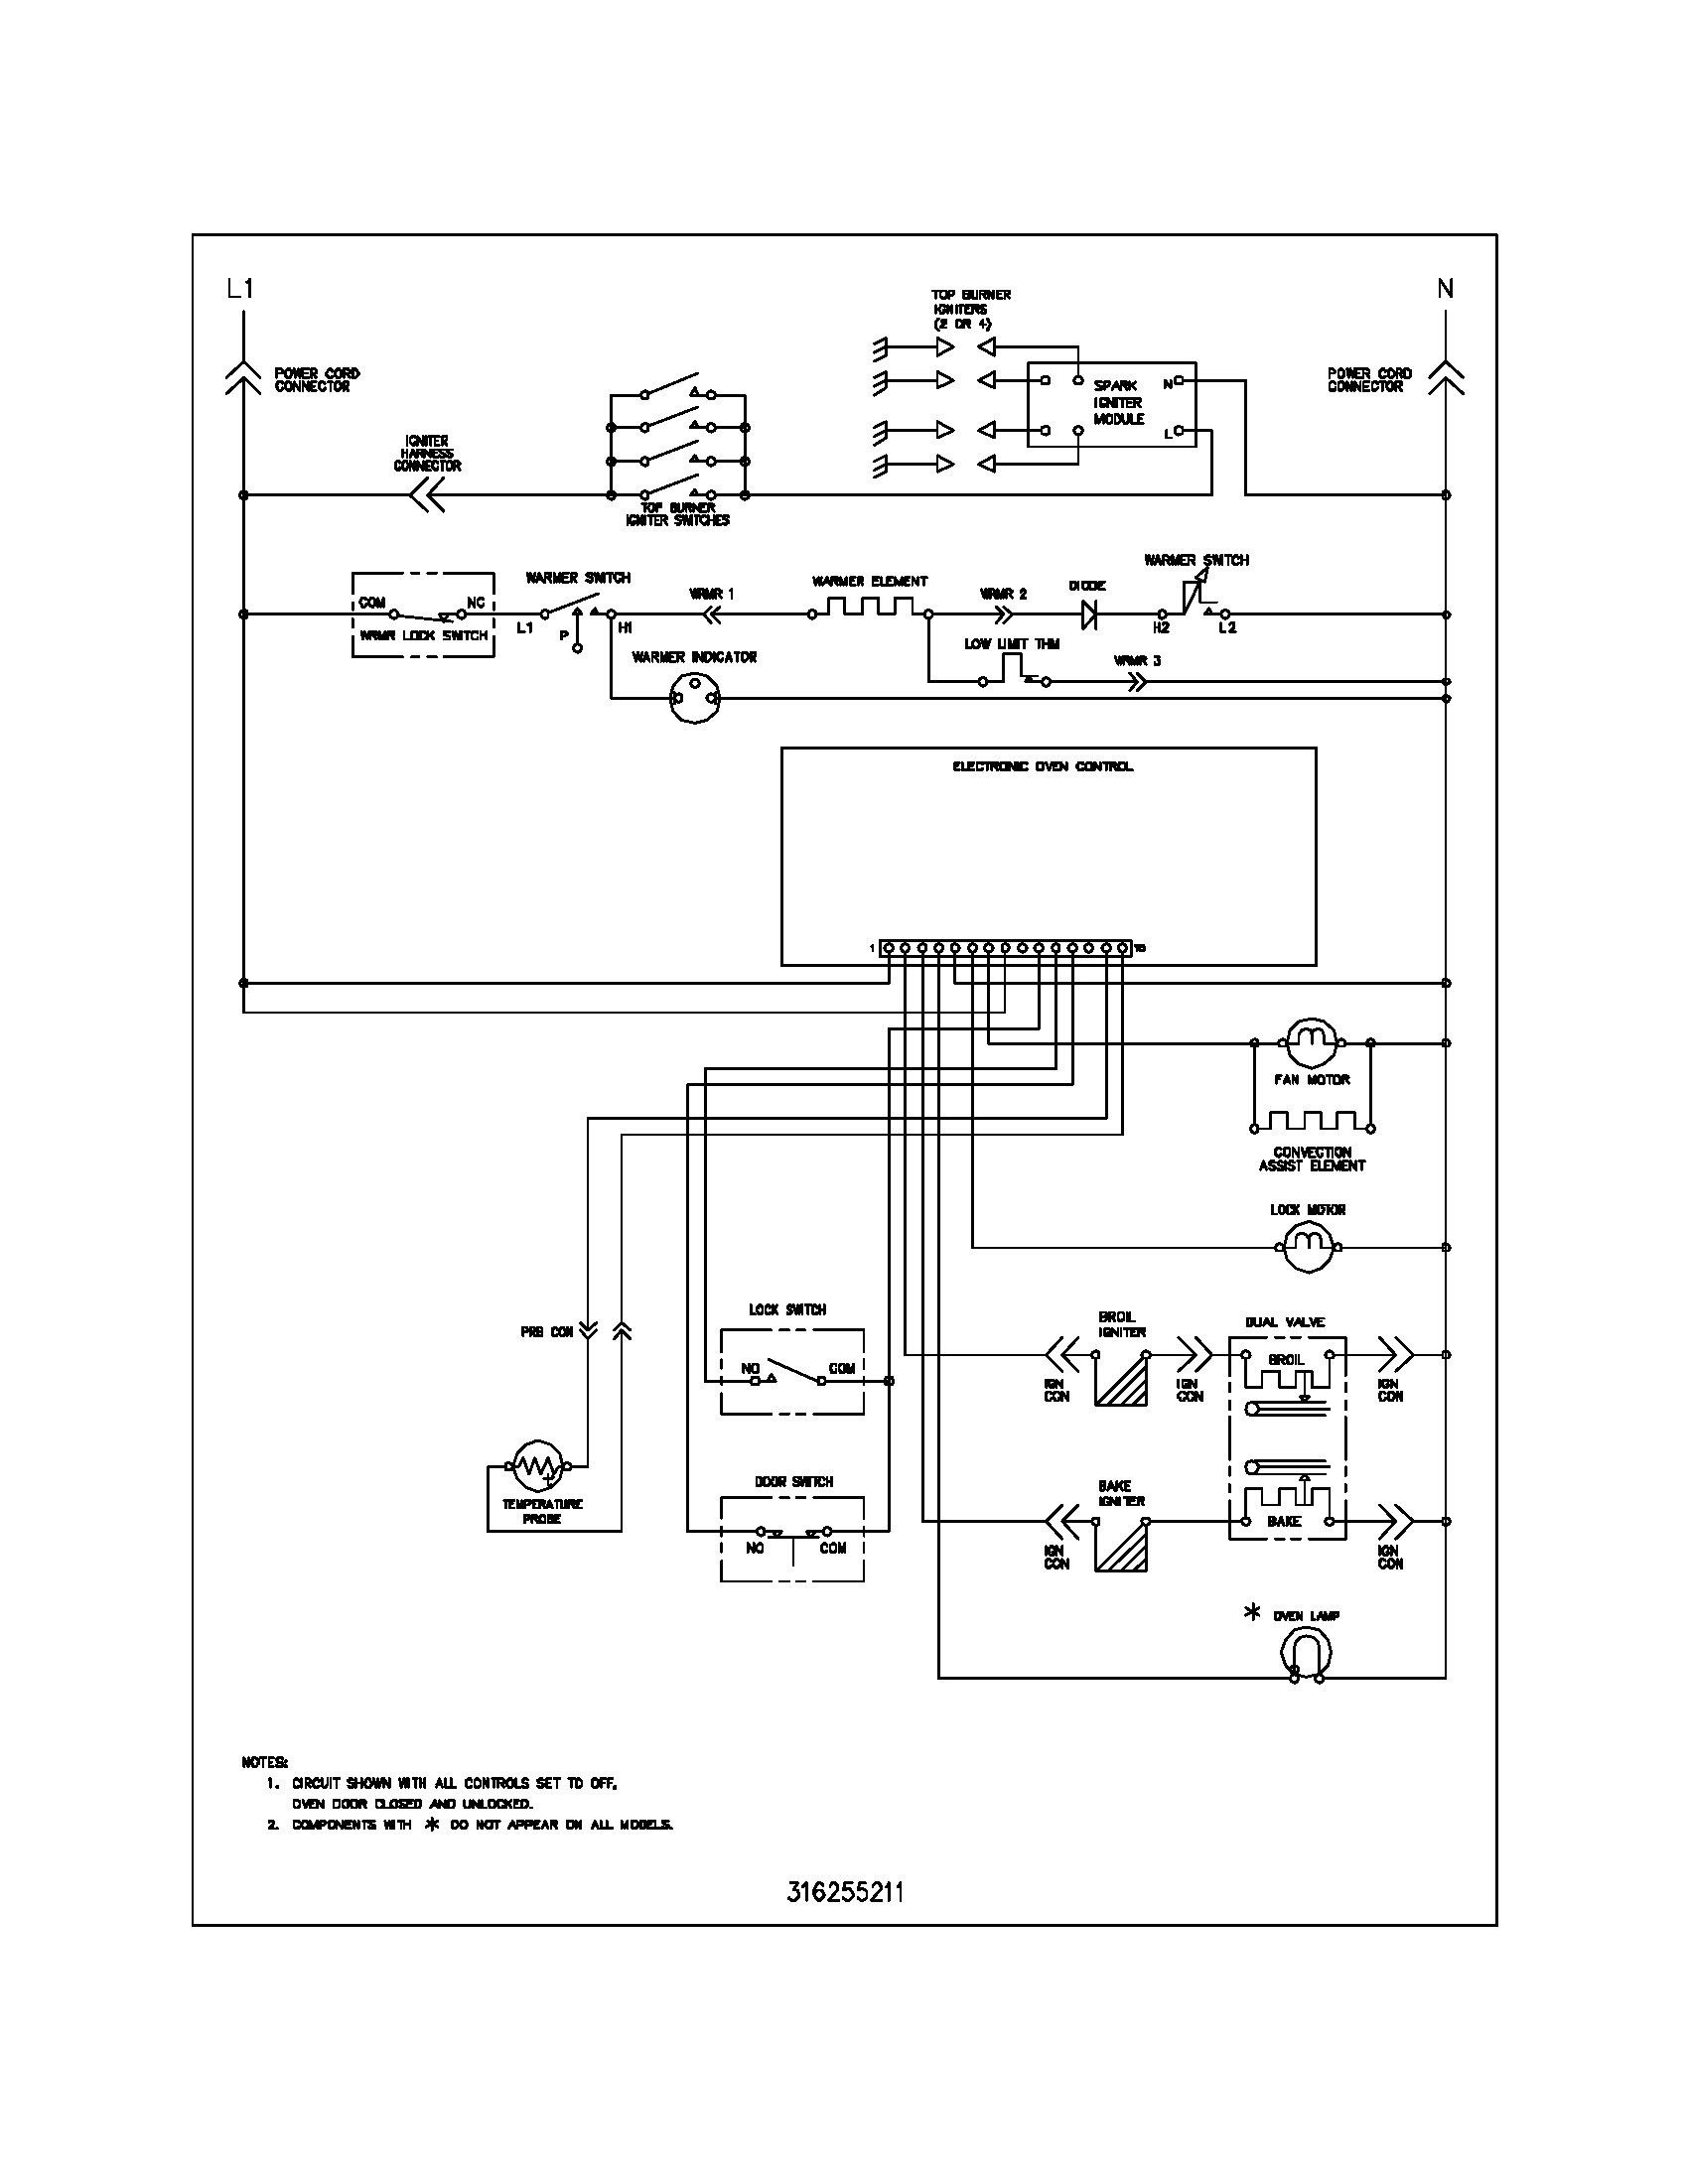 gas heater wiring diagram unique old gas furnace wiring diagram diagram diagramsample  old gas furnace wiring diagram diagram